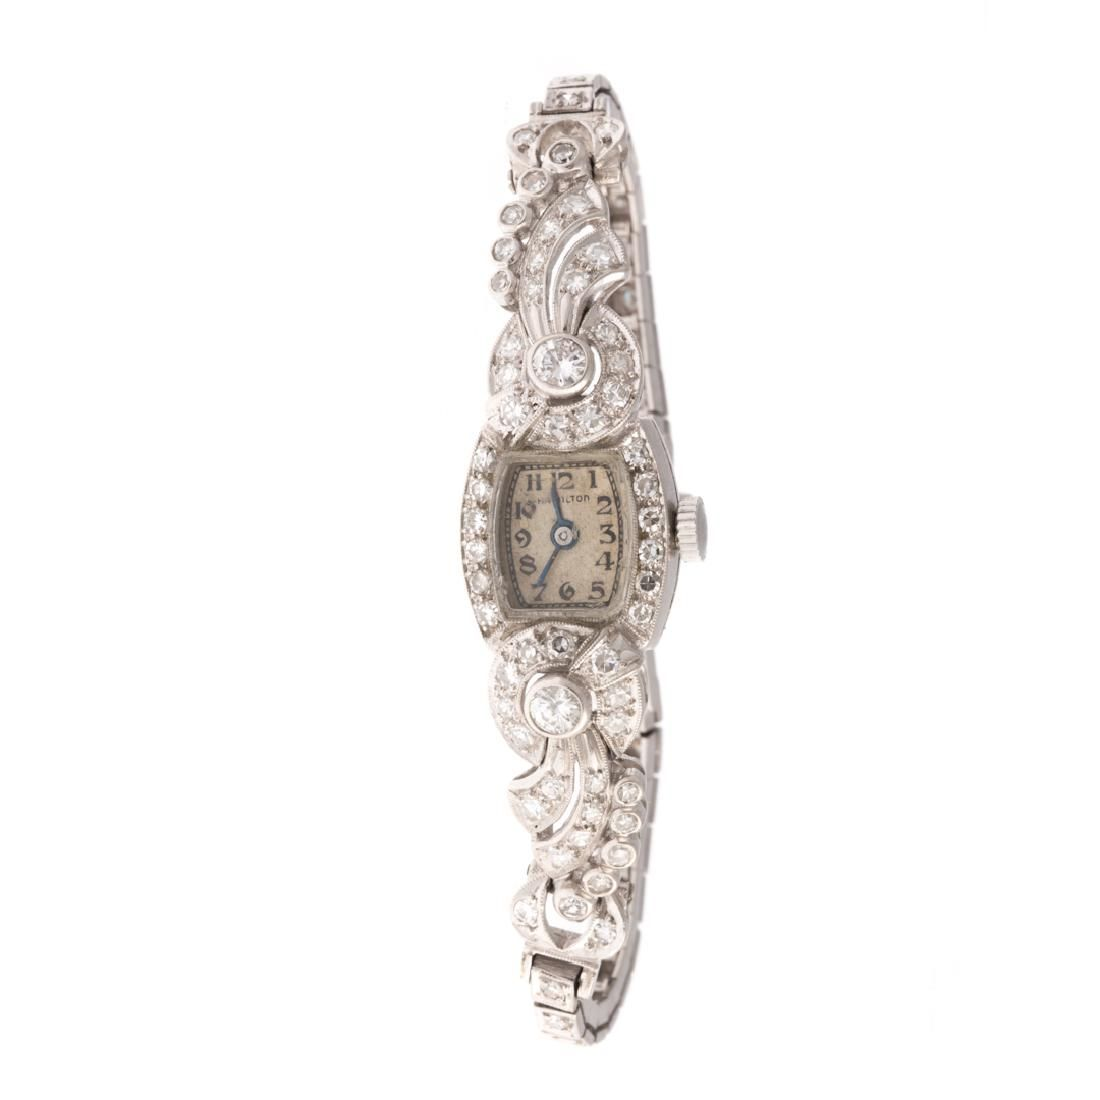 A Lady's Diamond Cocktail Watch in Platinum